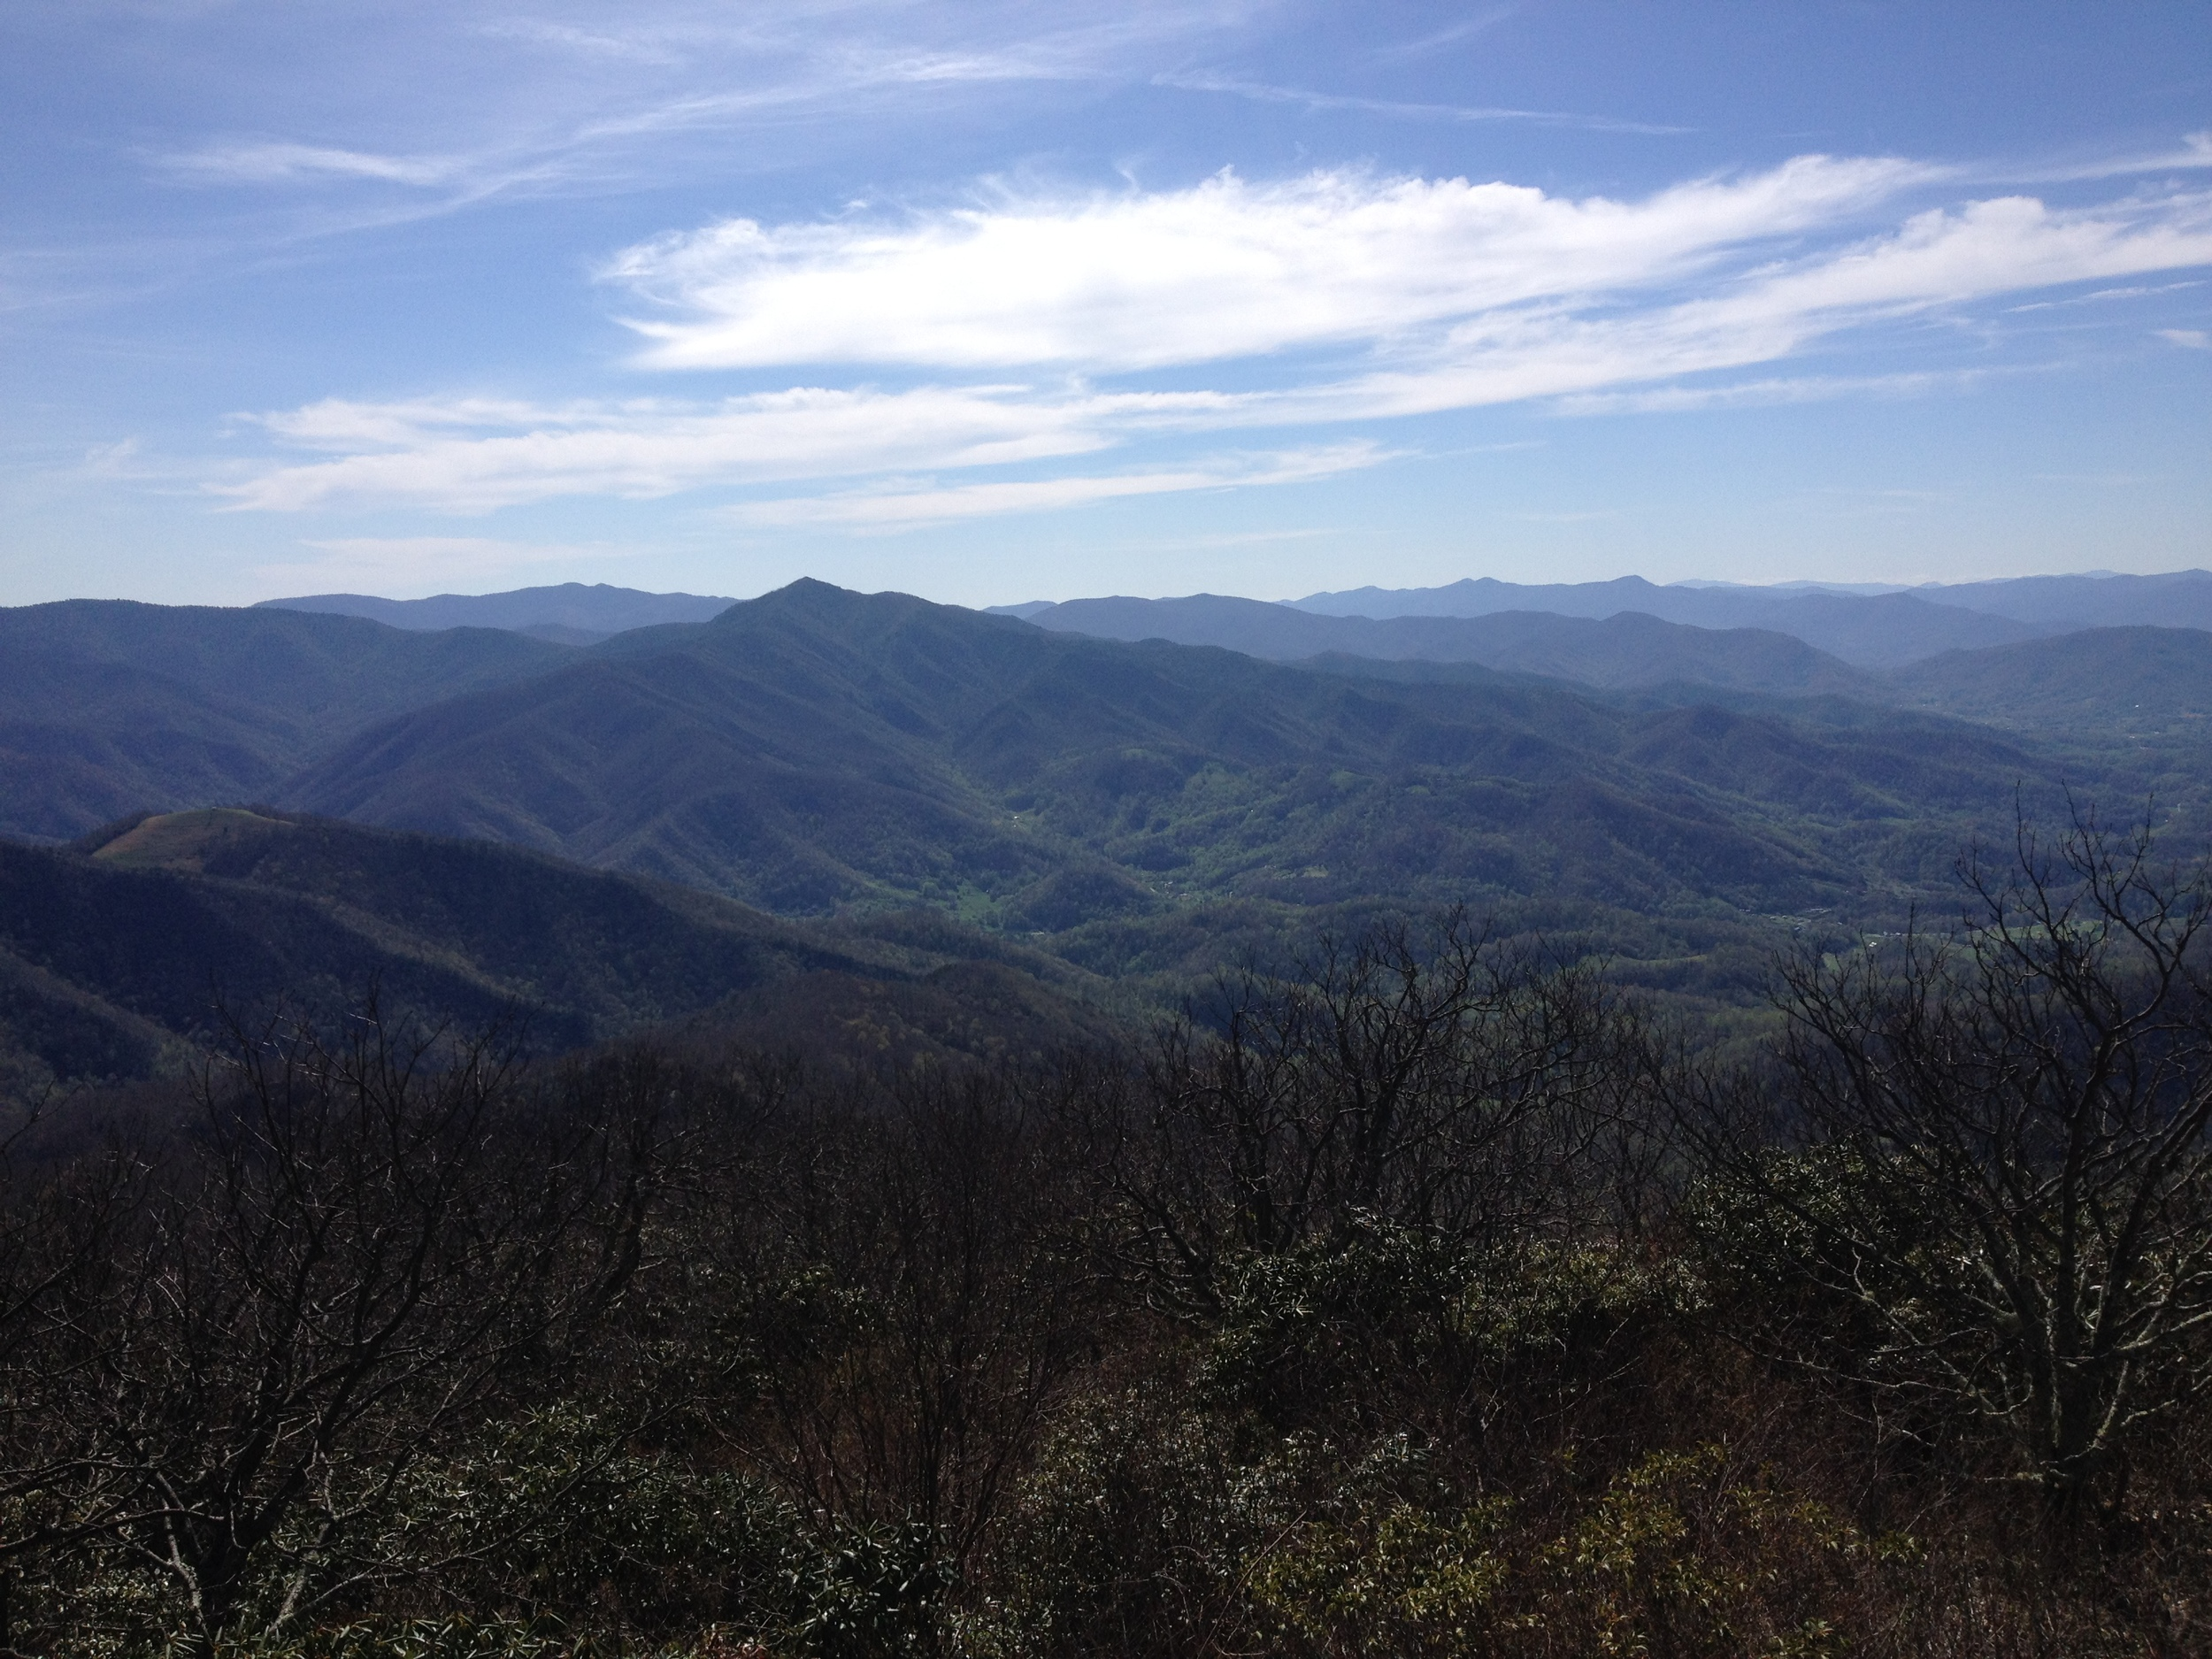 Cold Mountain as seen from Mount Pisgah